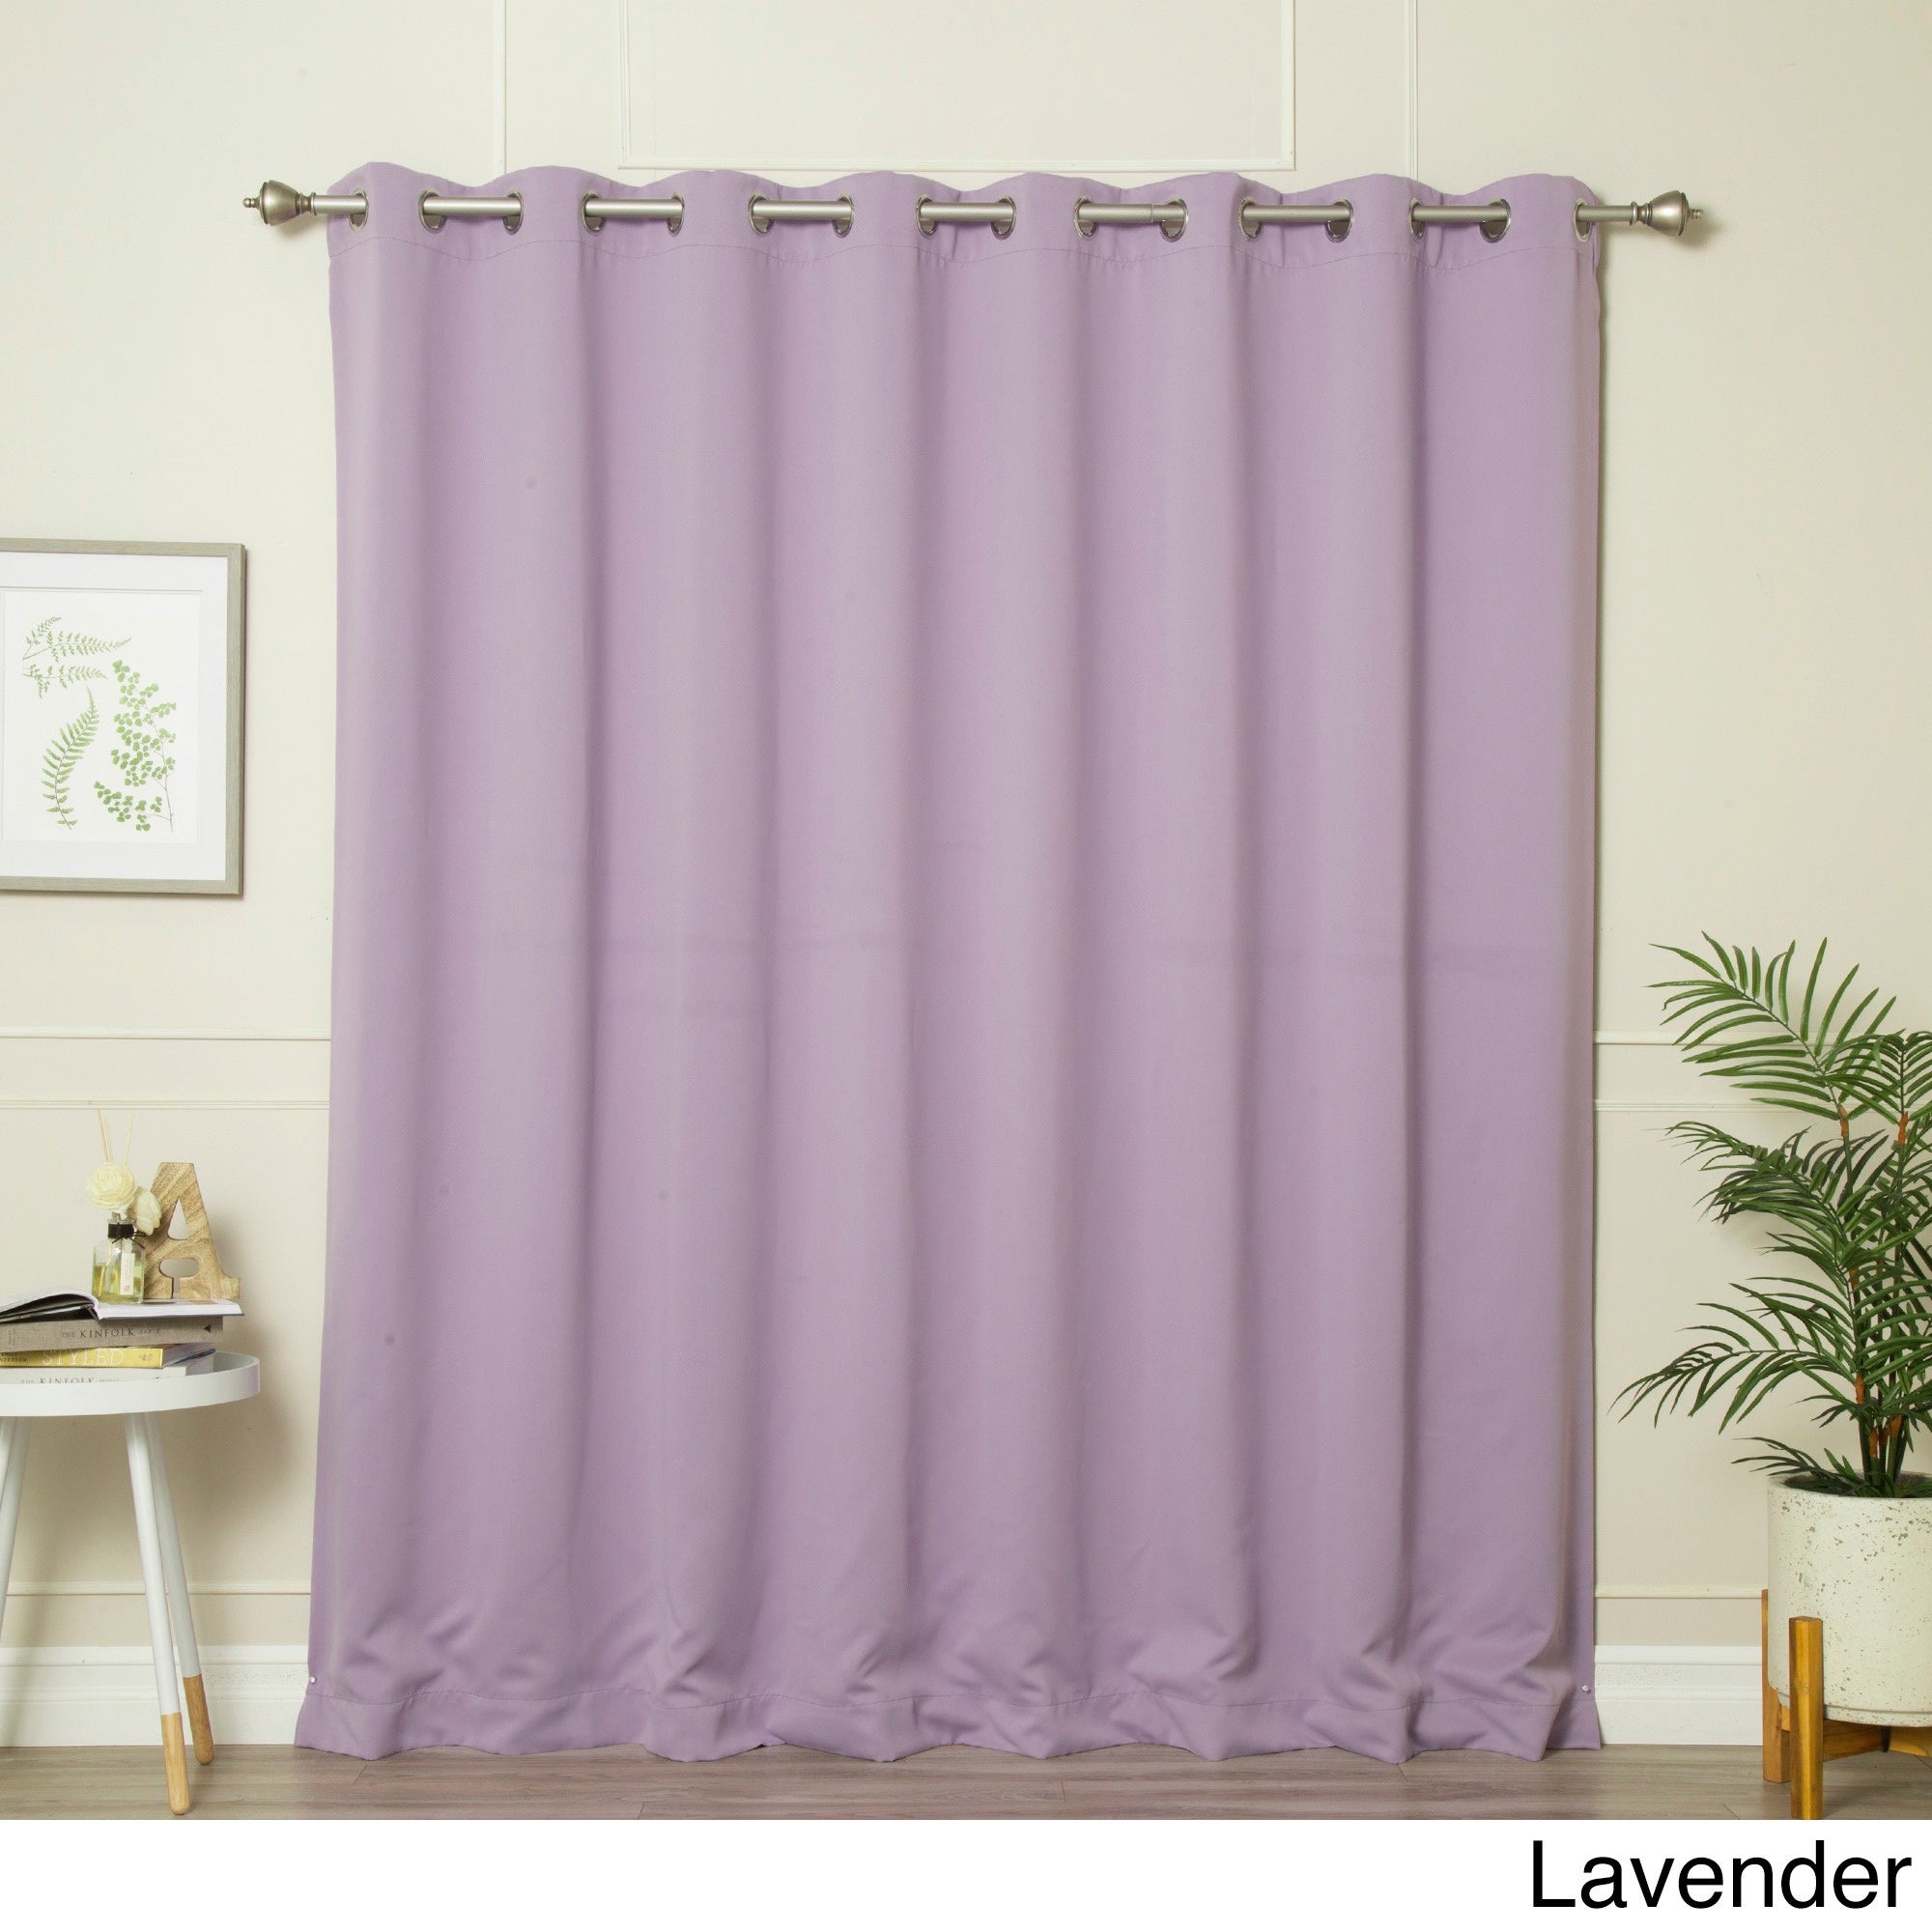 kohls your mint blackout classy curtains crate green drapes extra with jcpenney rooms the drapery in and c window home wide linen accentuate barrel ikat